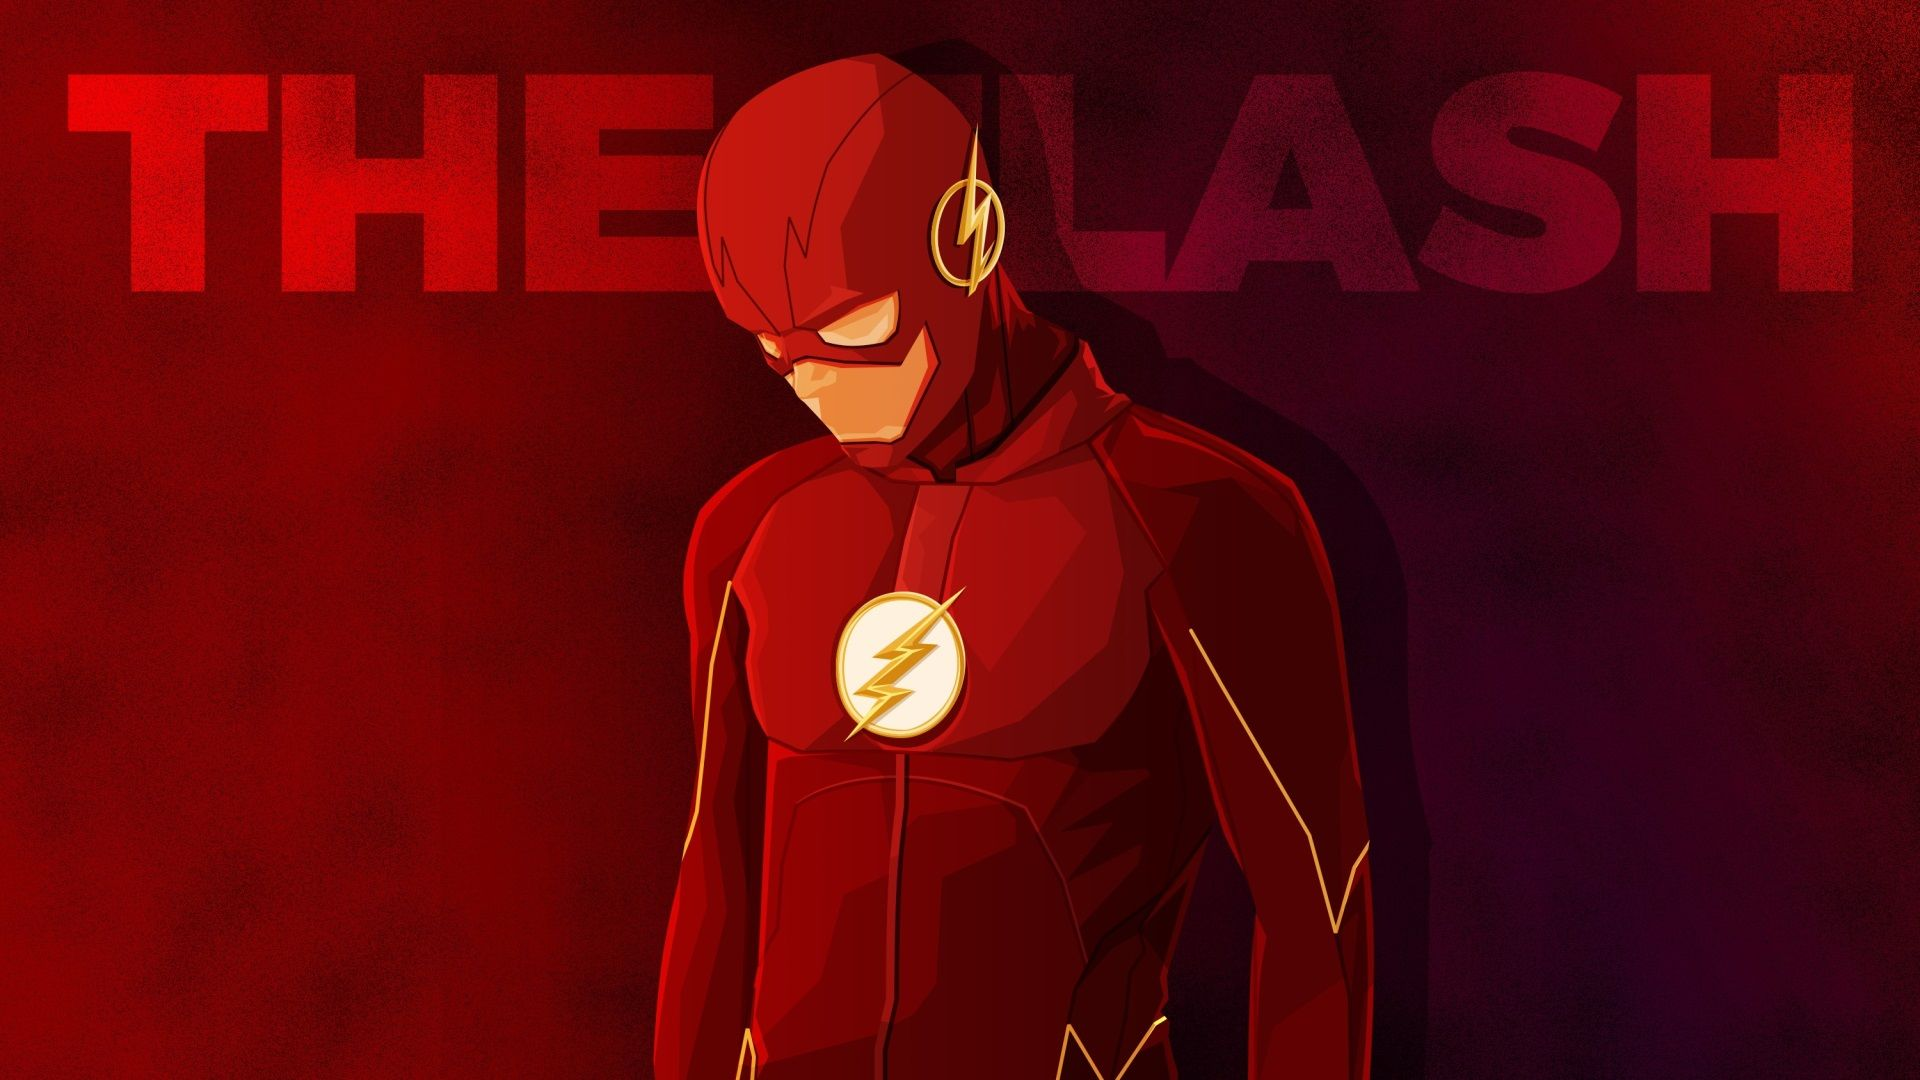 1920x1080 The Flash Wallpaper Photo Download Free